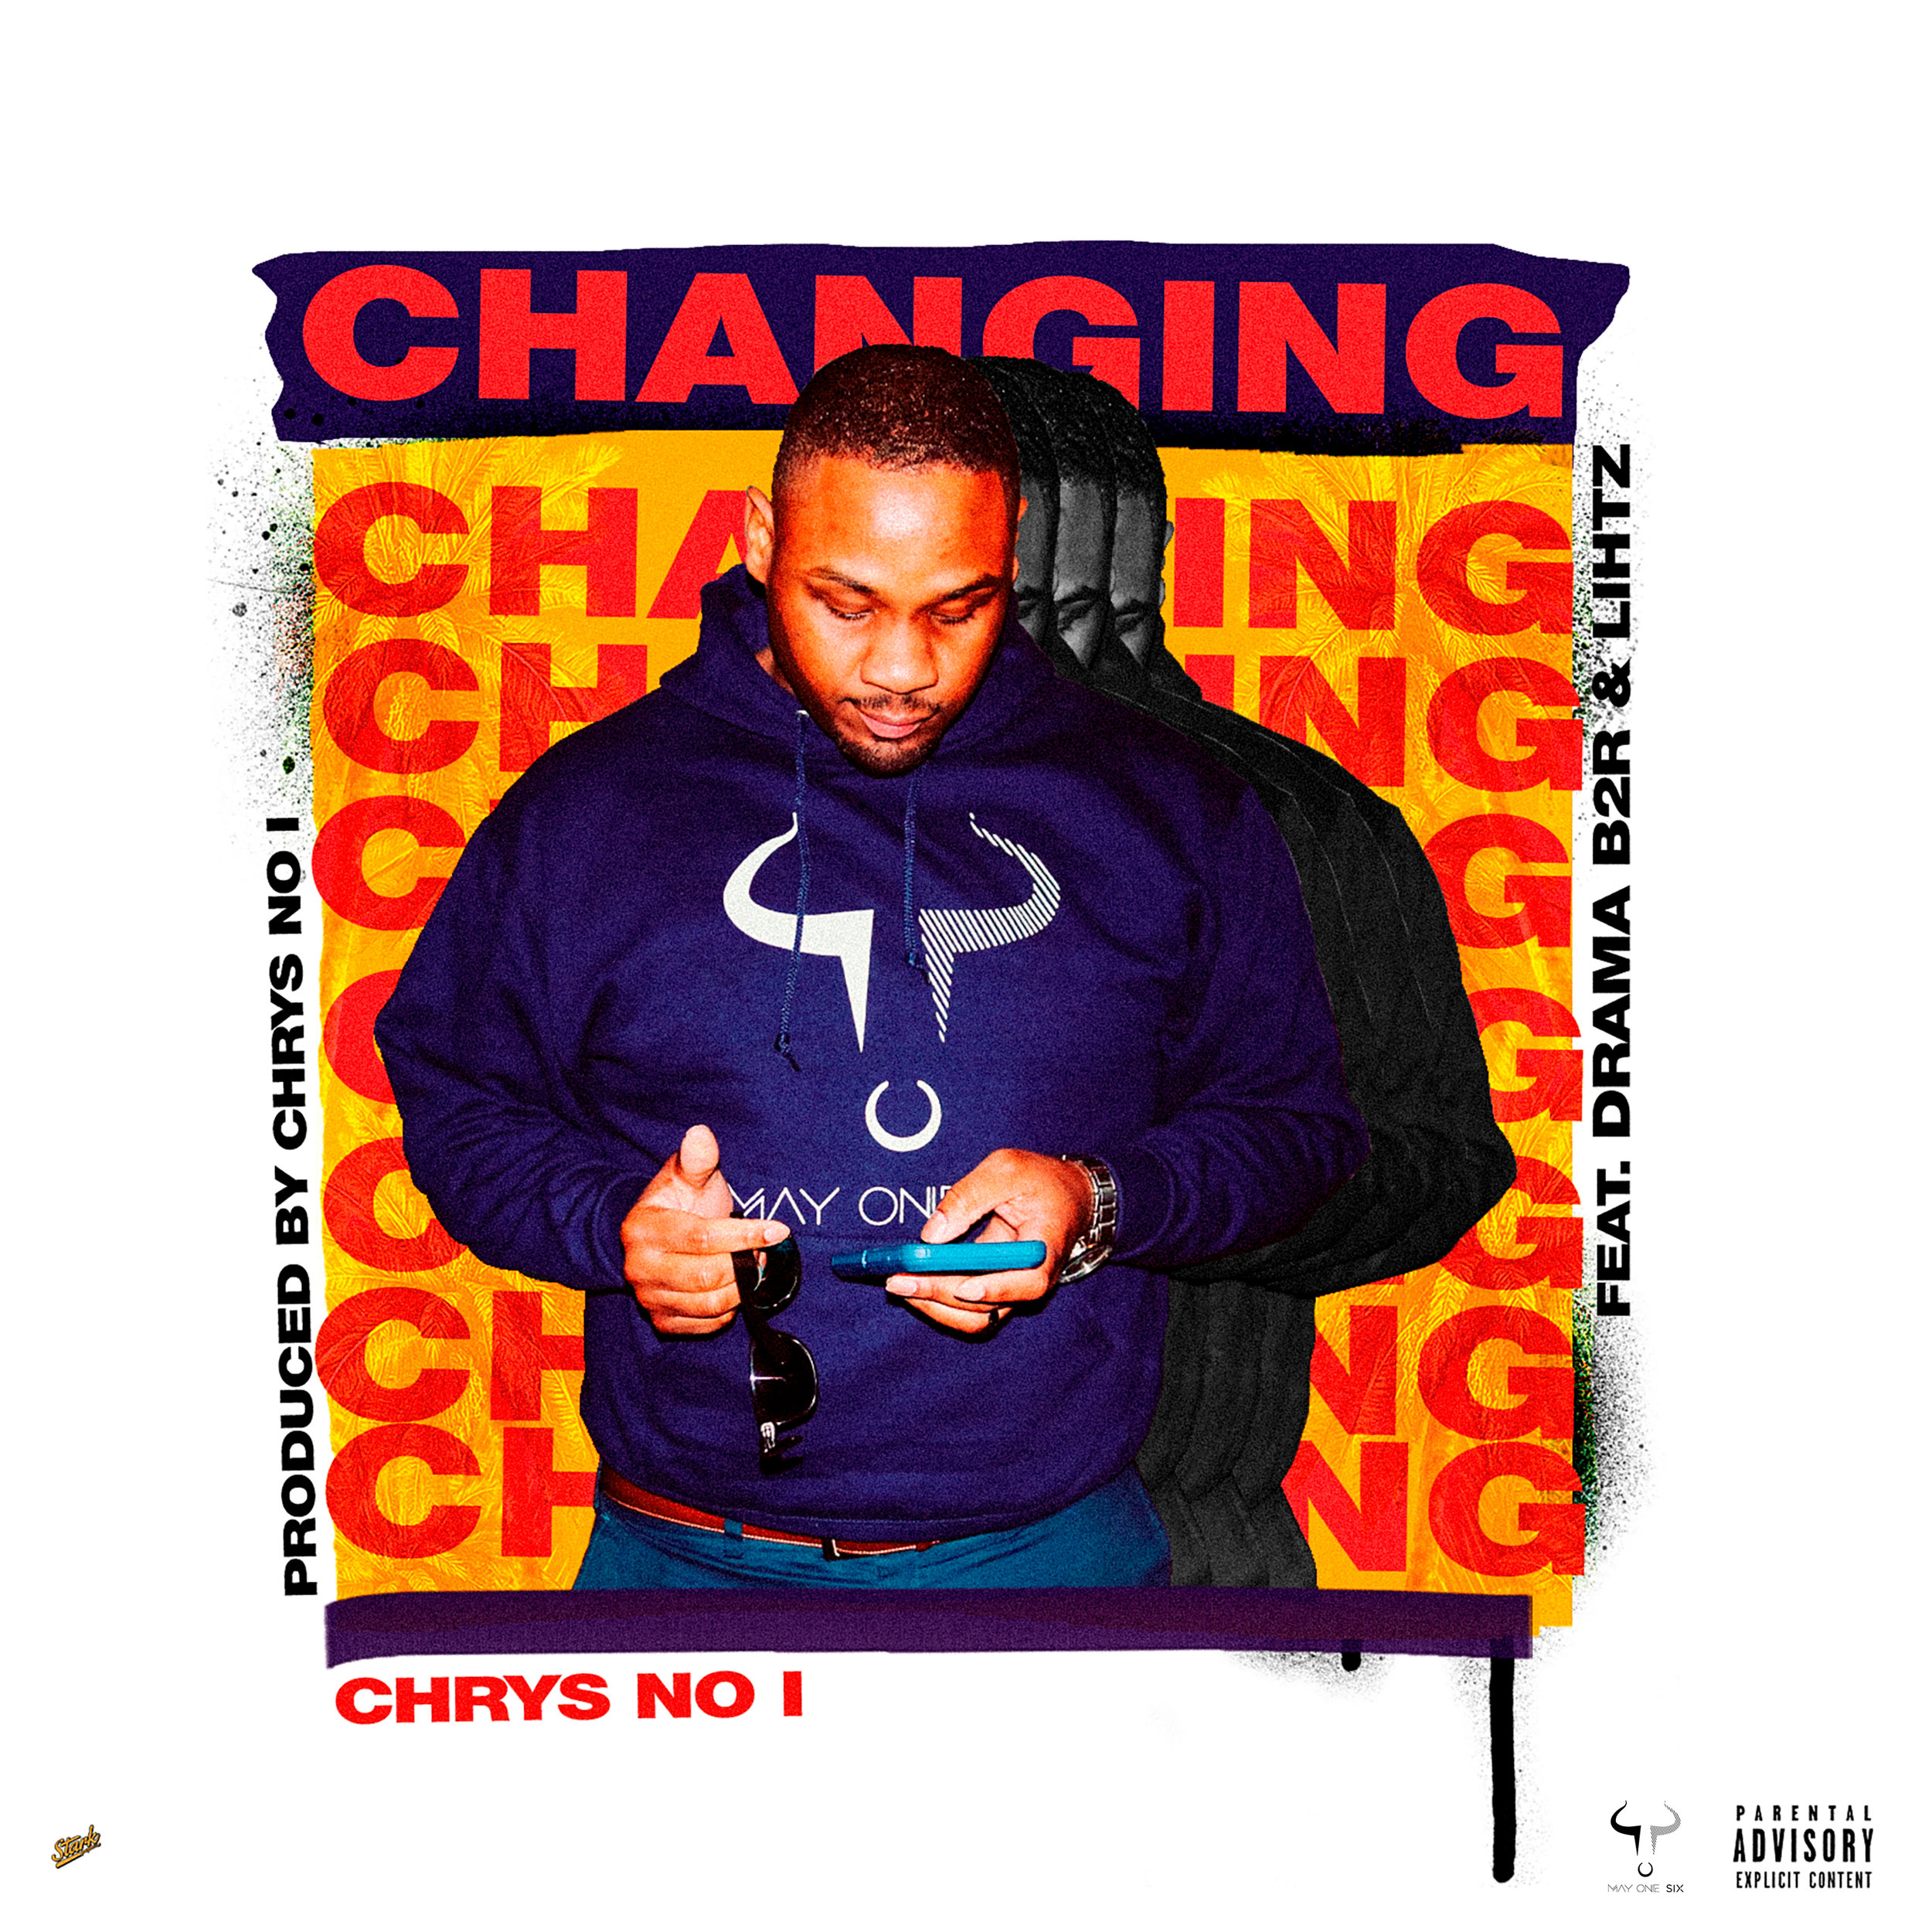 Chrys No I Changing song cover